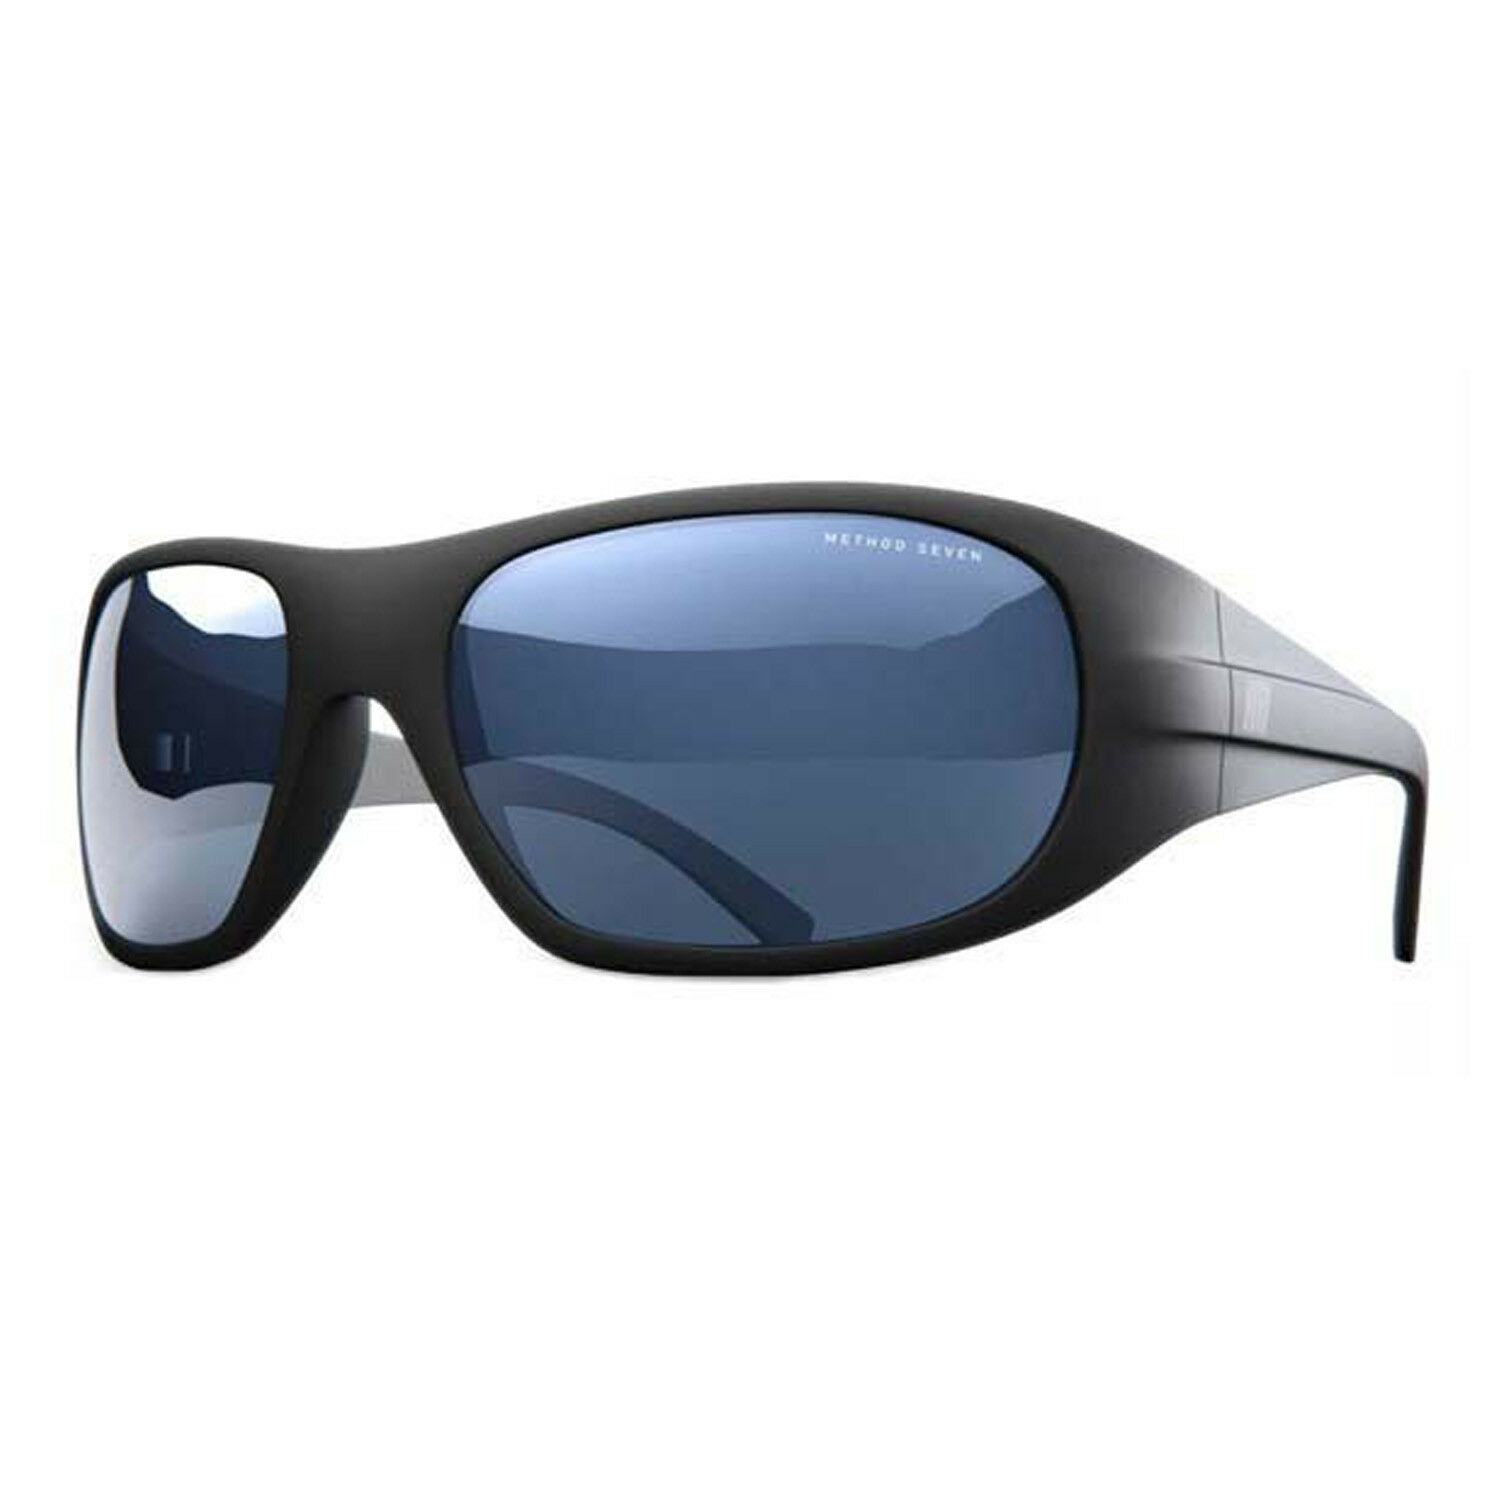 Method Seven Operator HPS Plus Glasses - Grow Glasses UV Sunglassess